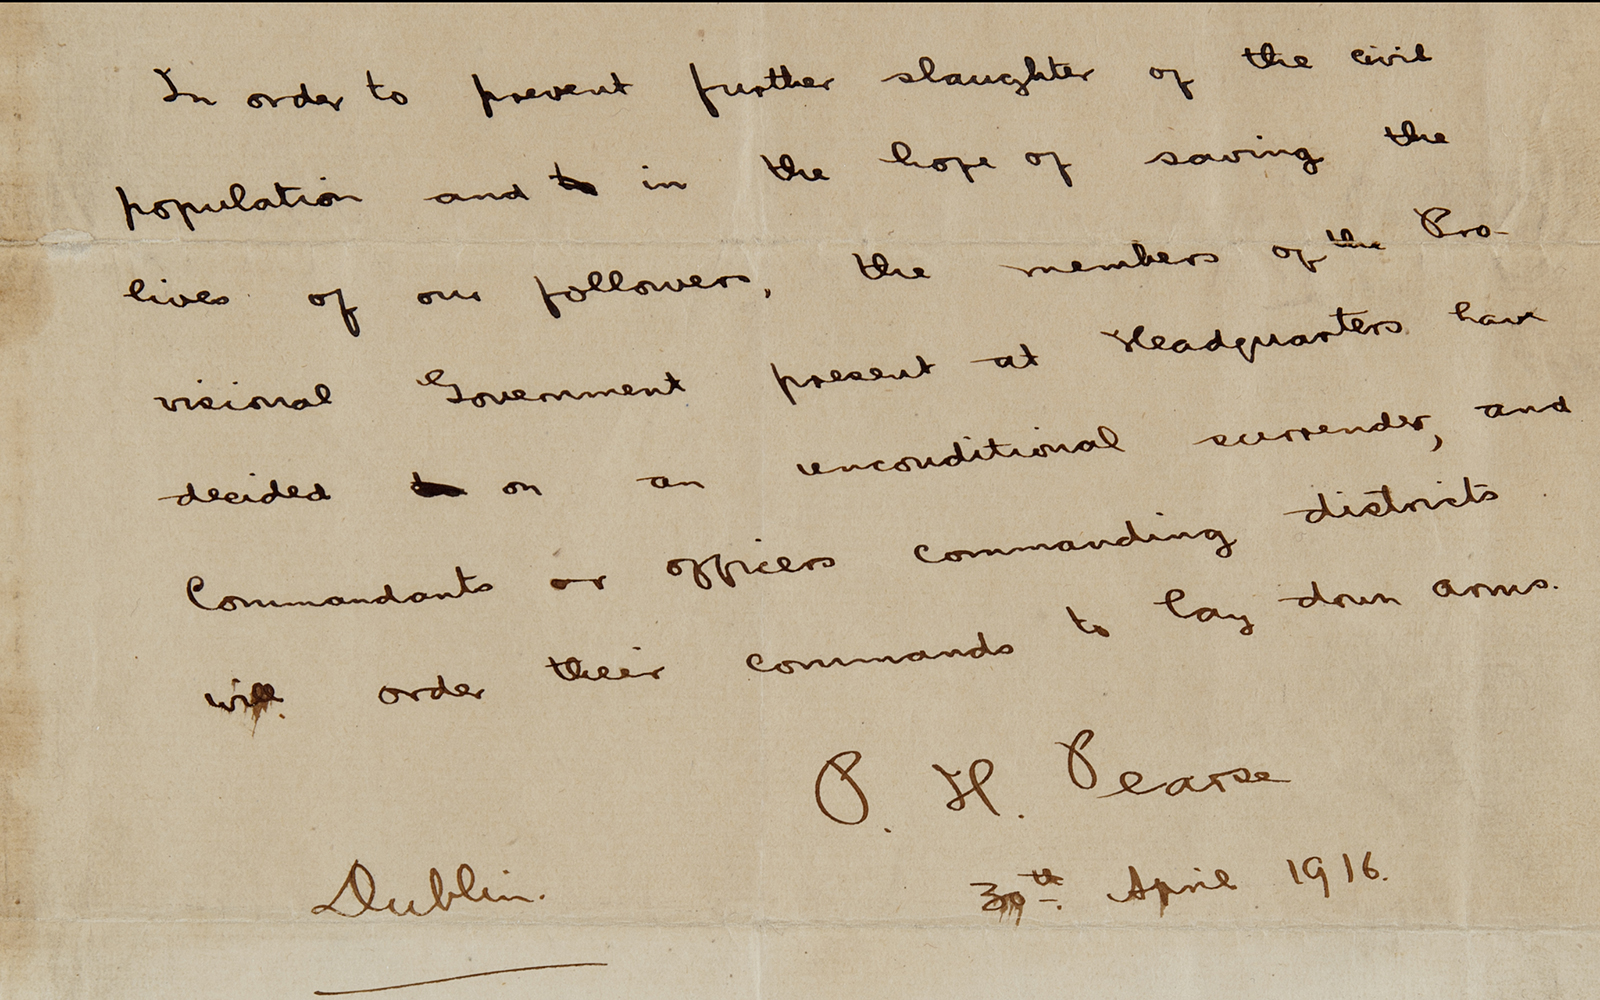 Padraig Pearse's Surrender Letter, 30th April 1916